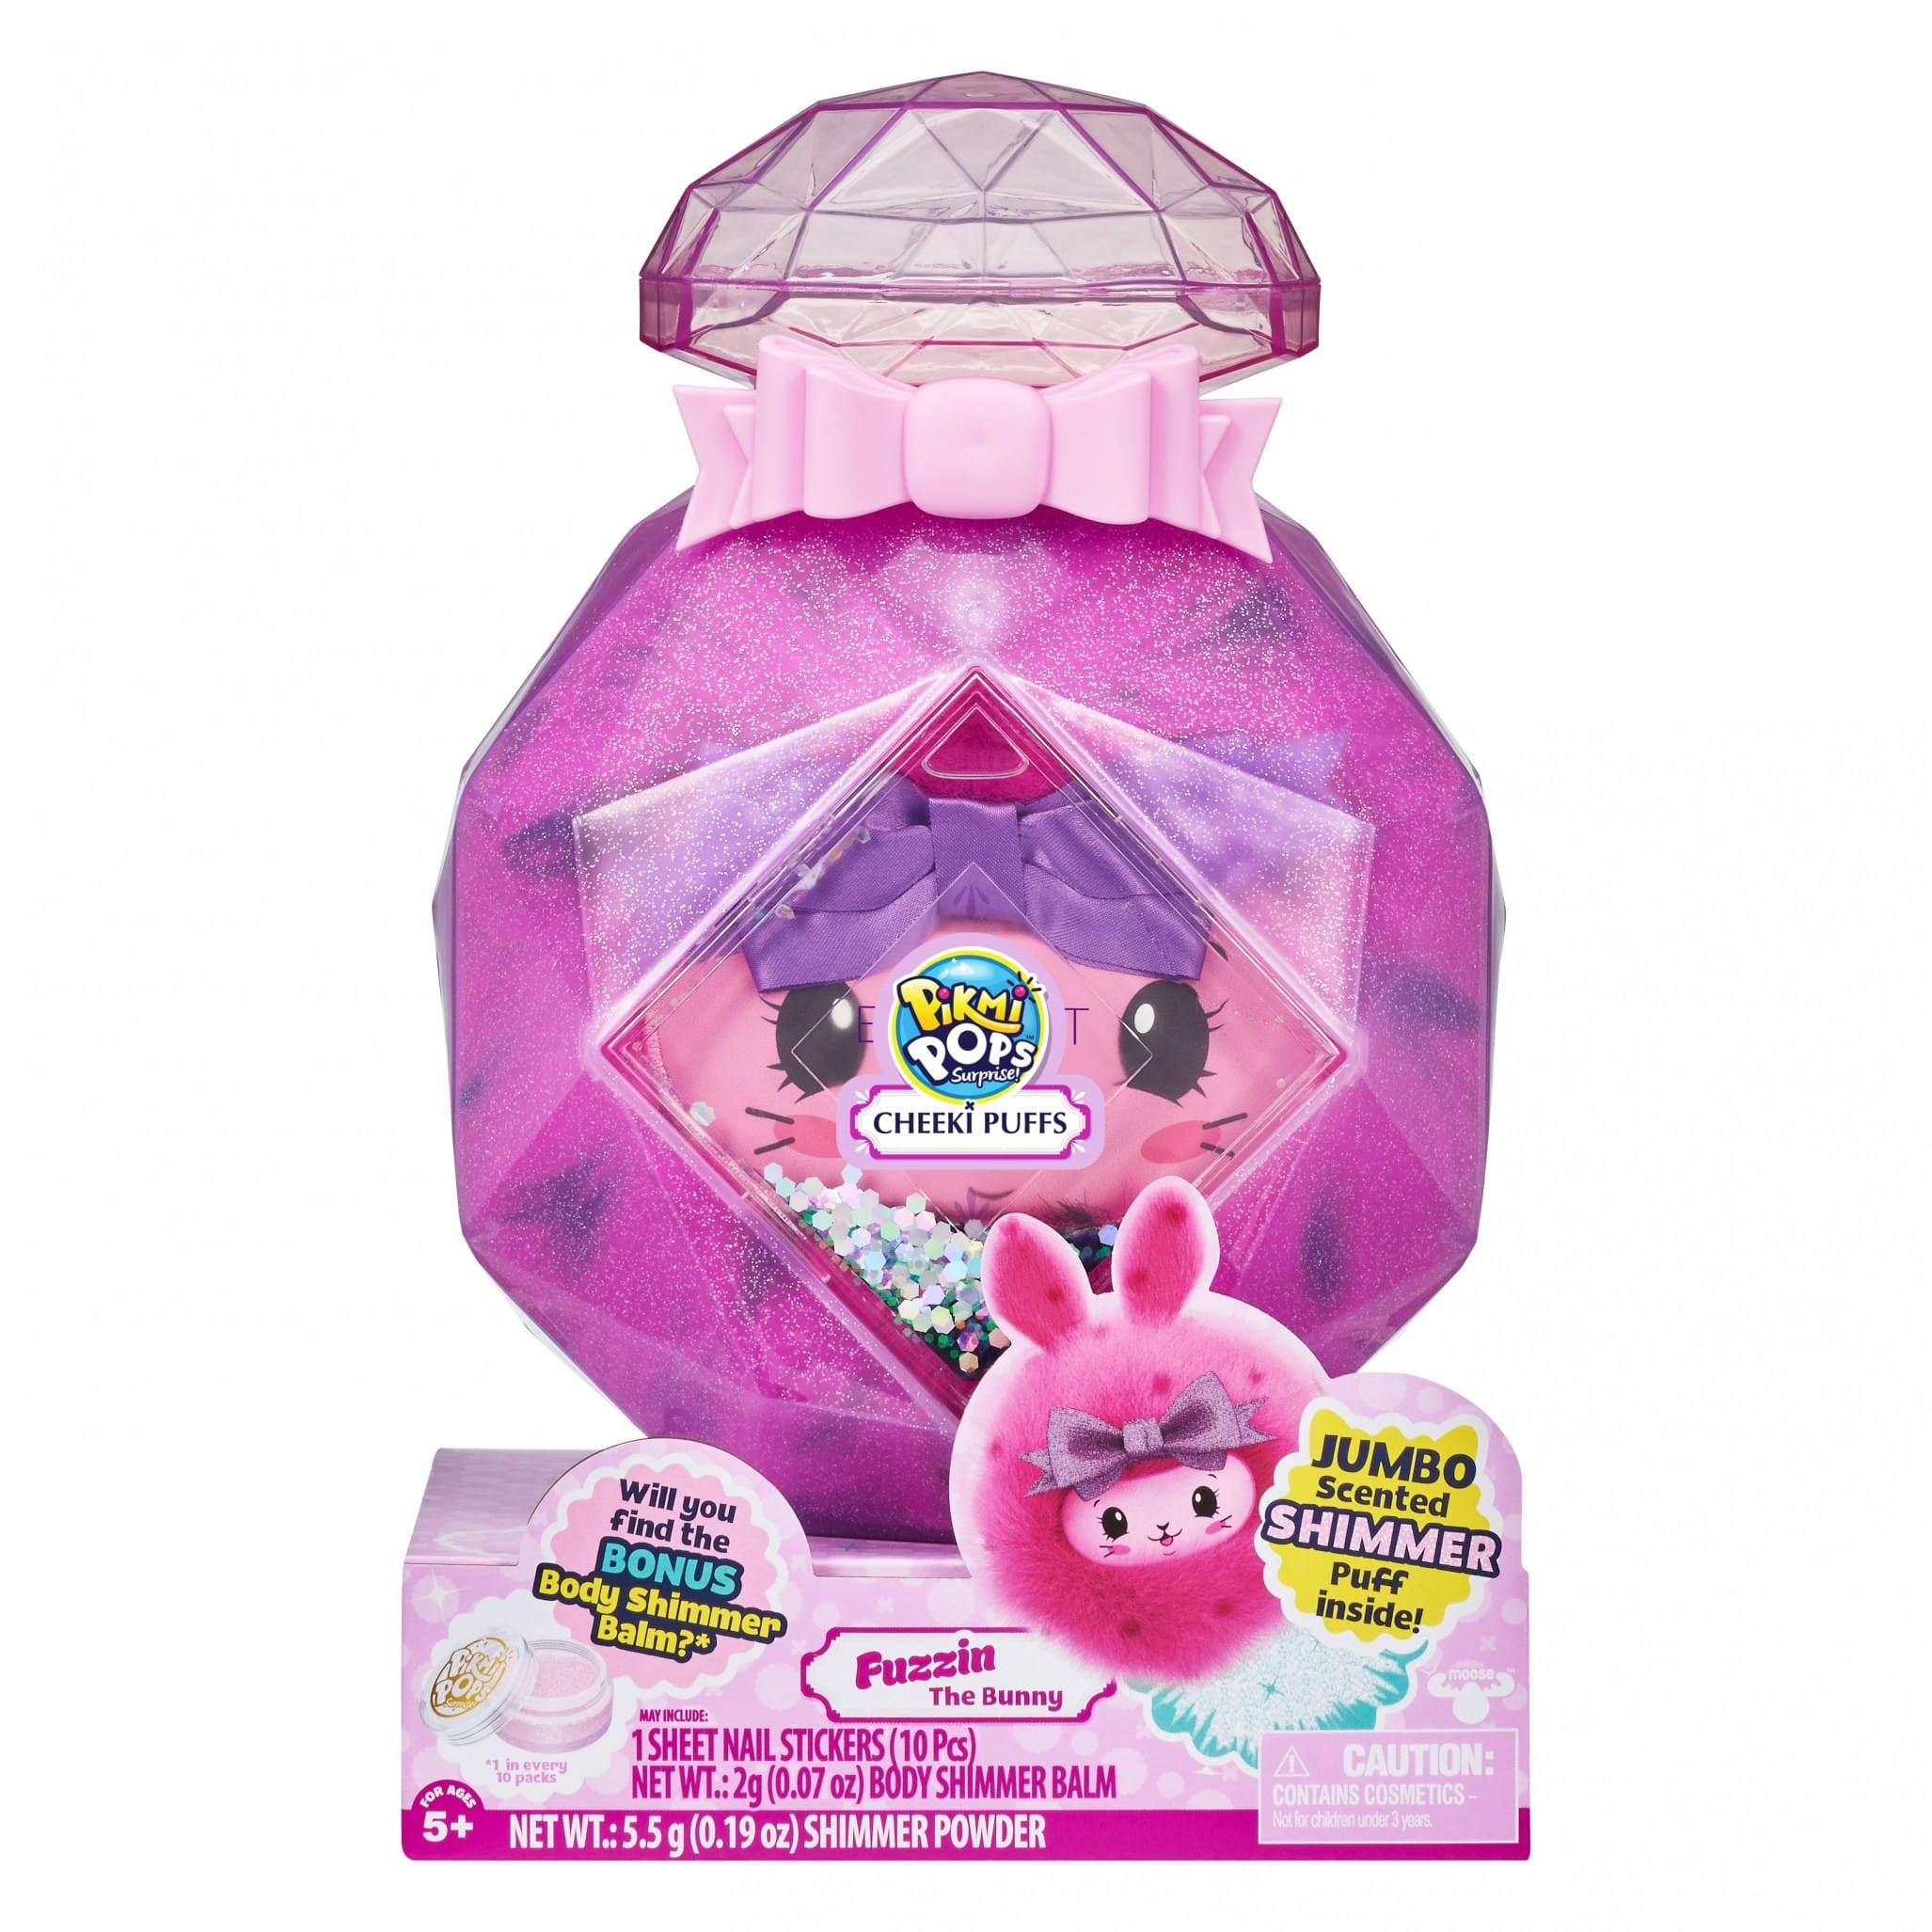 """Pikmi Pops Cheeki Puffs - Fuzzin the Bunny Large 7"""" Collectible Scented Shimmer Plush Toy in Perfume with Surprises for $9.99 Retail $24.99"""